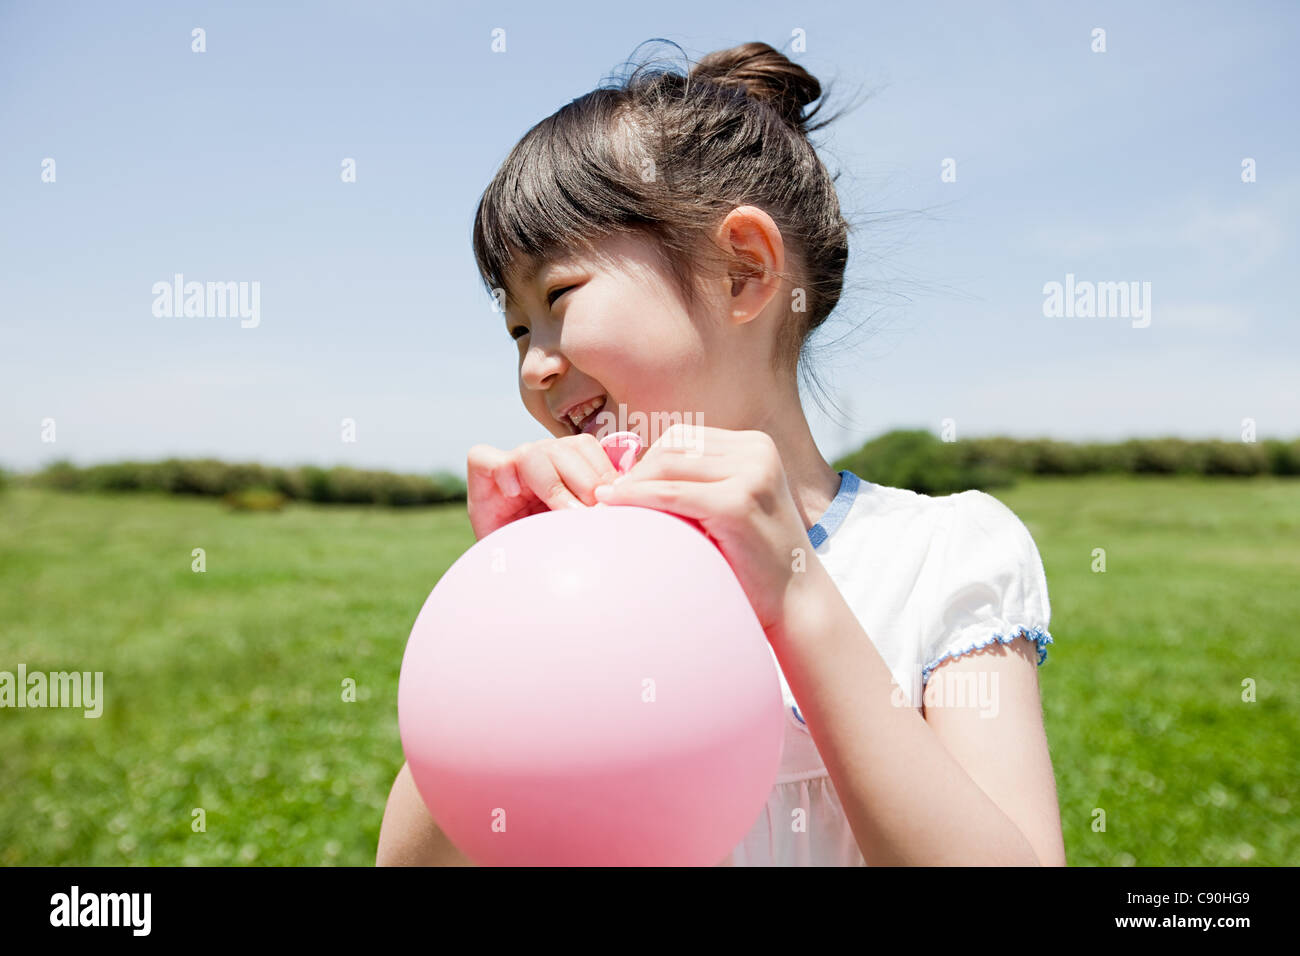 Girl with pink balloon - Stock Image